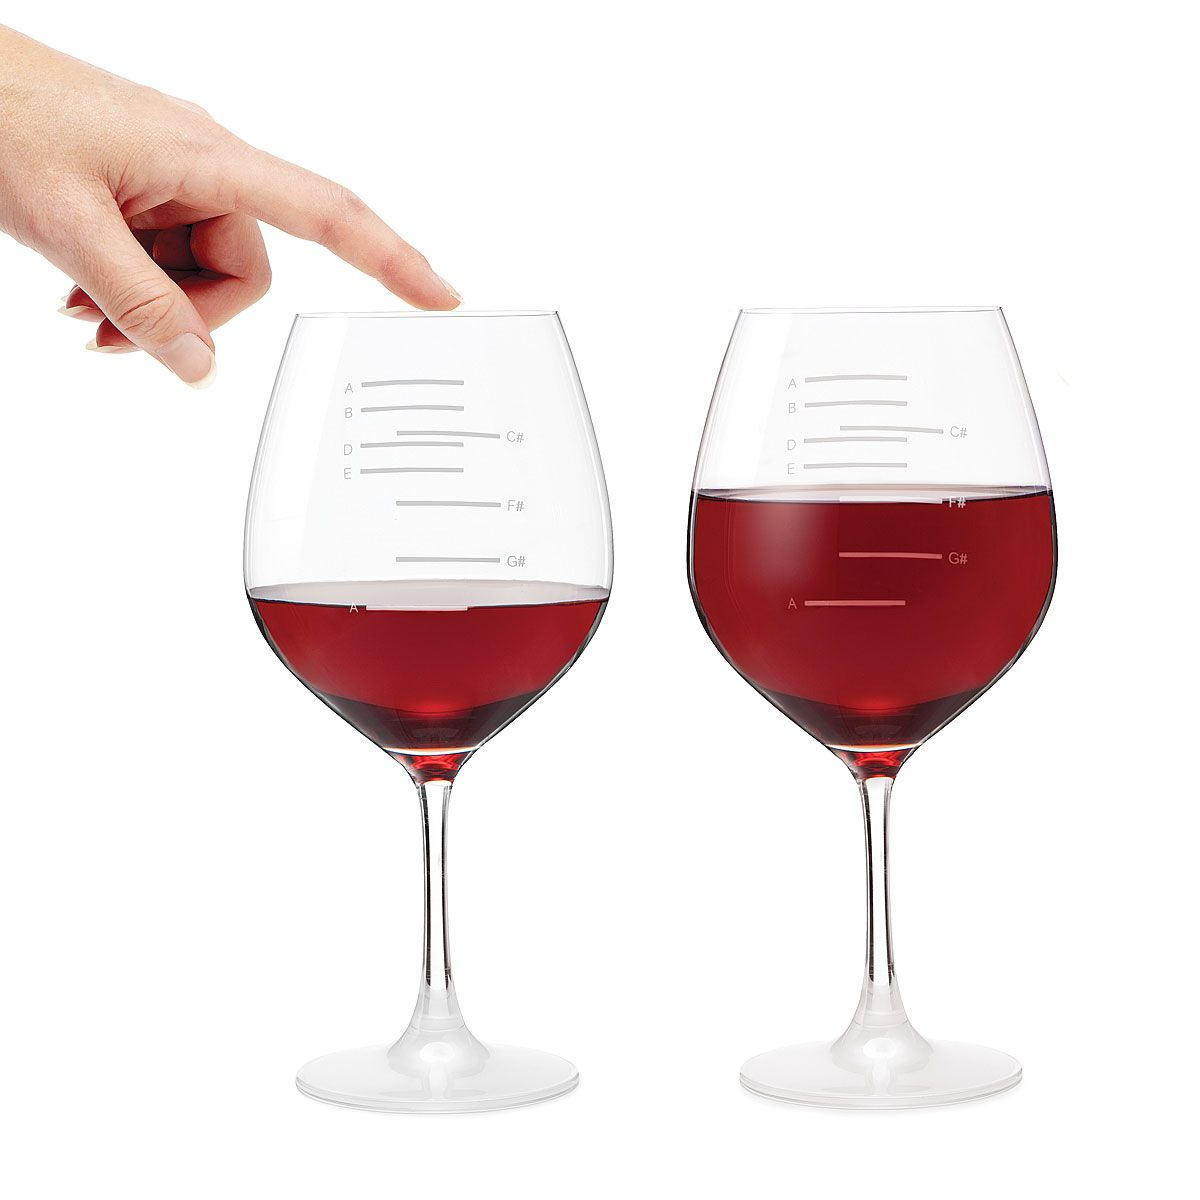 Major Scale Musical Wine Glasses Set Of 2 Etched Red Wine Glasses Music Tune Uncommongood Gifts For Wine Lovers Red Wine Glasses Unique Christmas Gifts